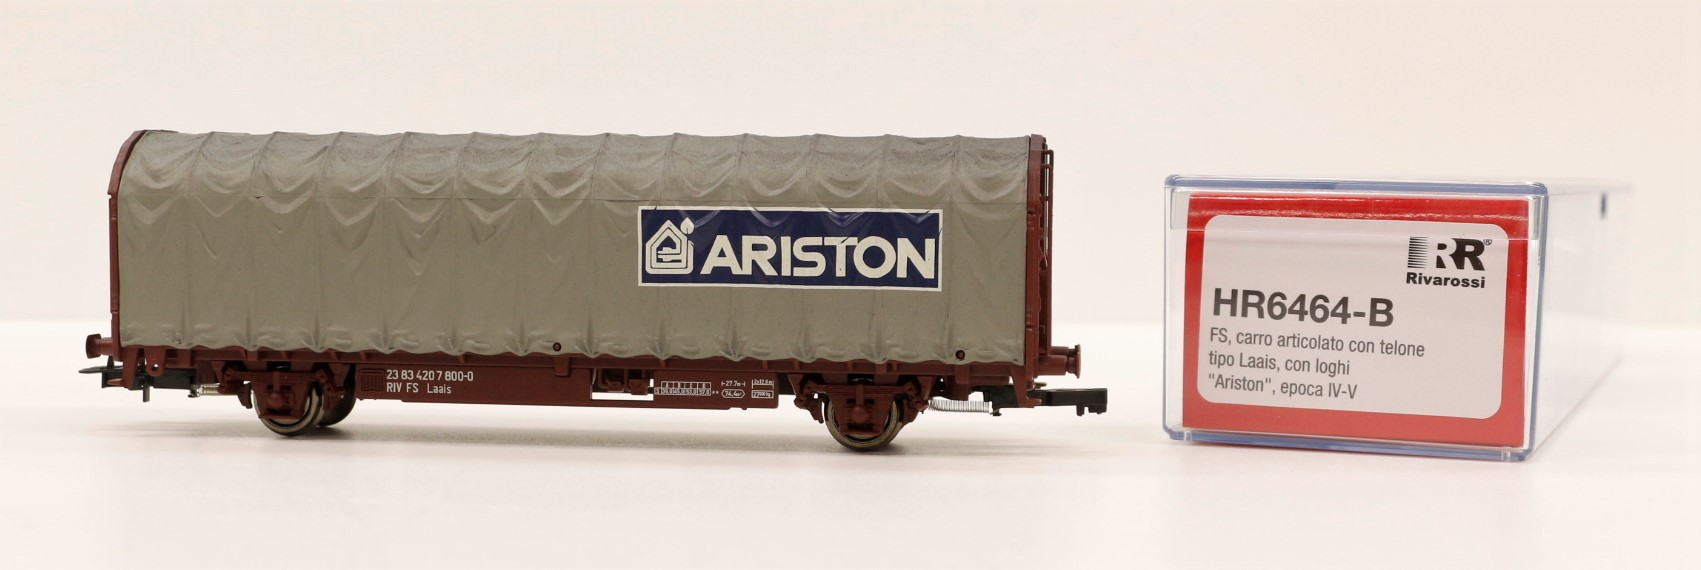 HR6464-B Rivarossi HO Carro FS telonato ARISTON ep. V-VI scala 1:87